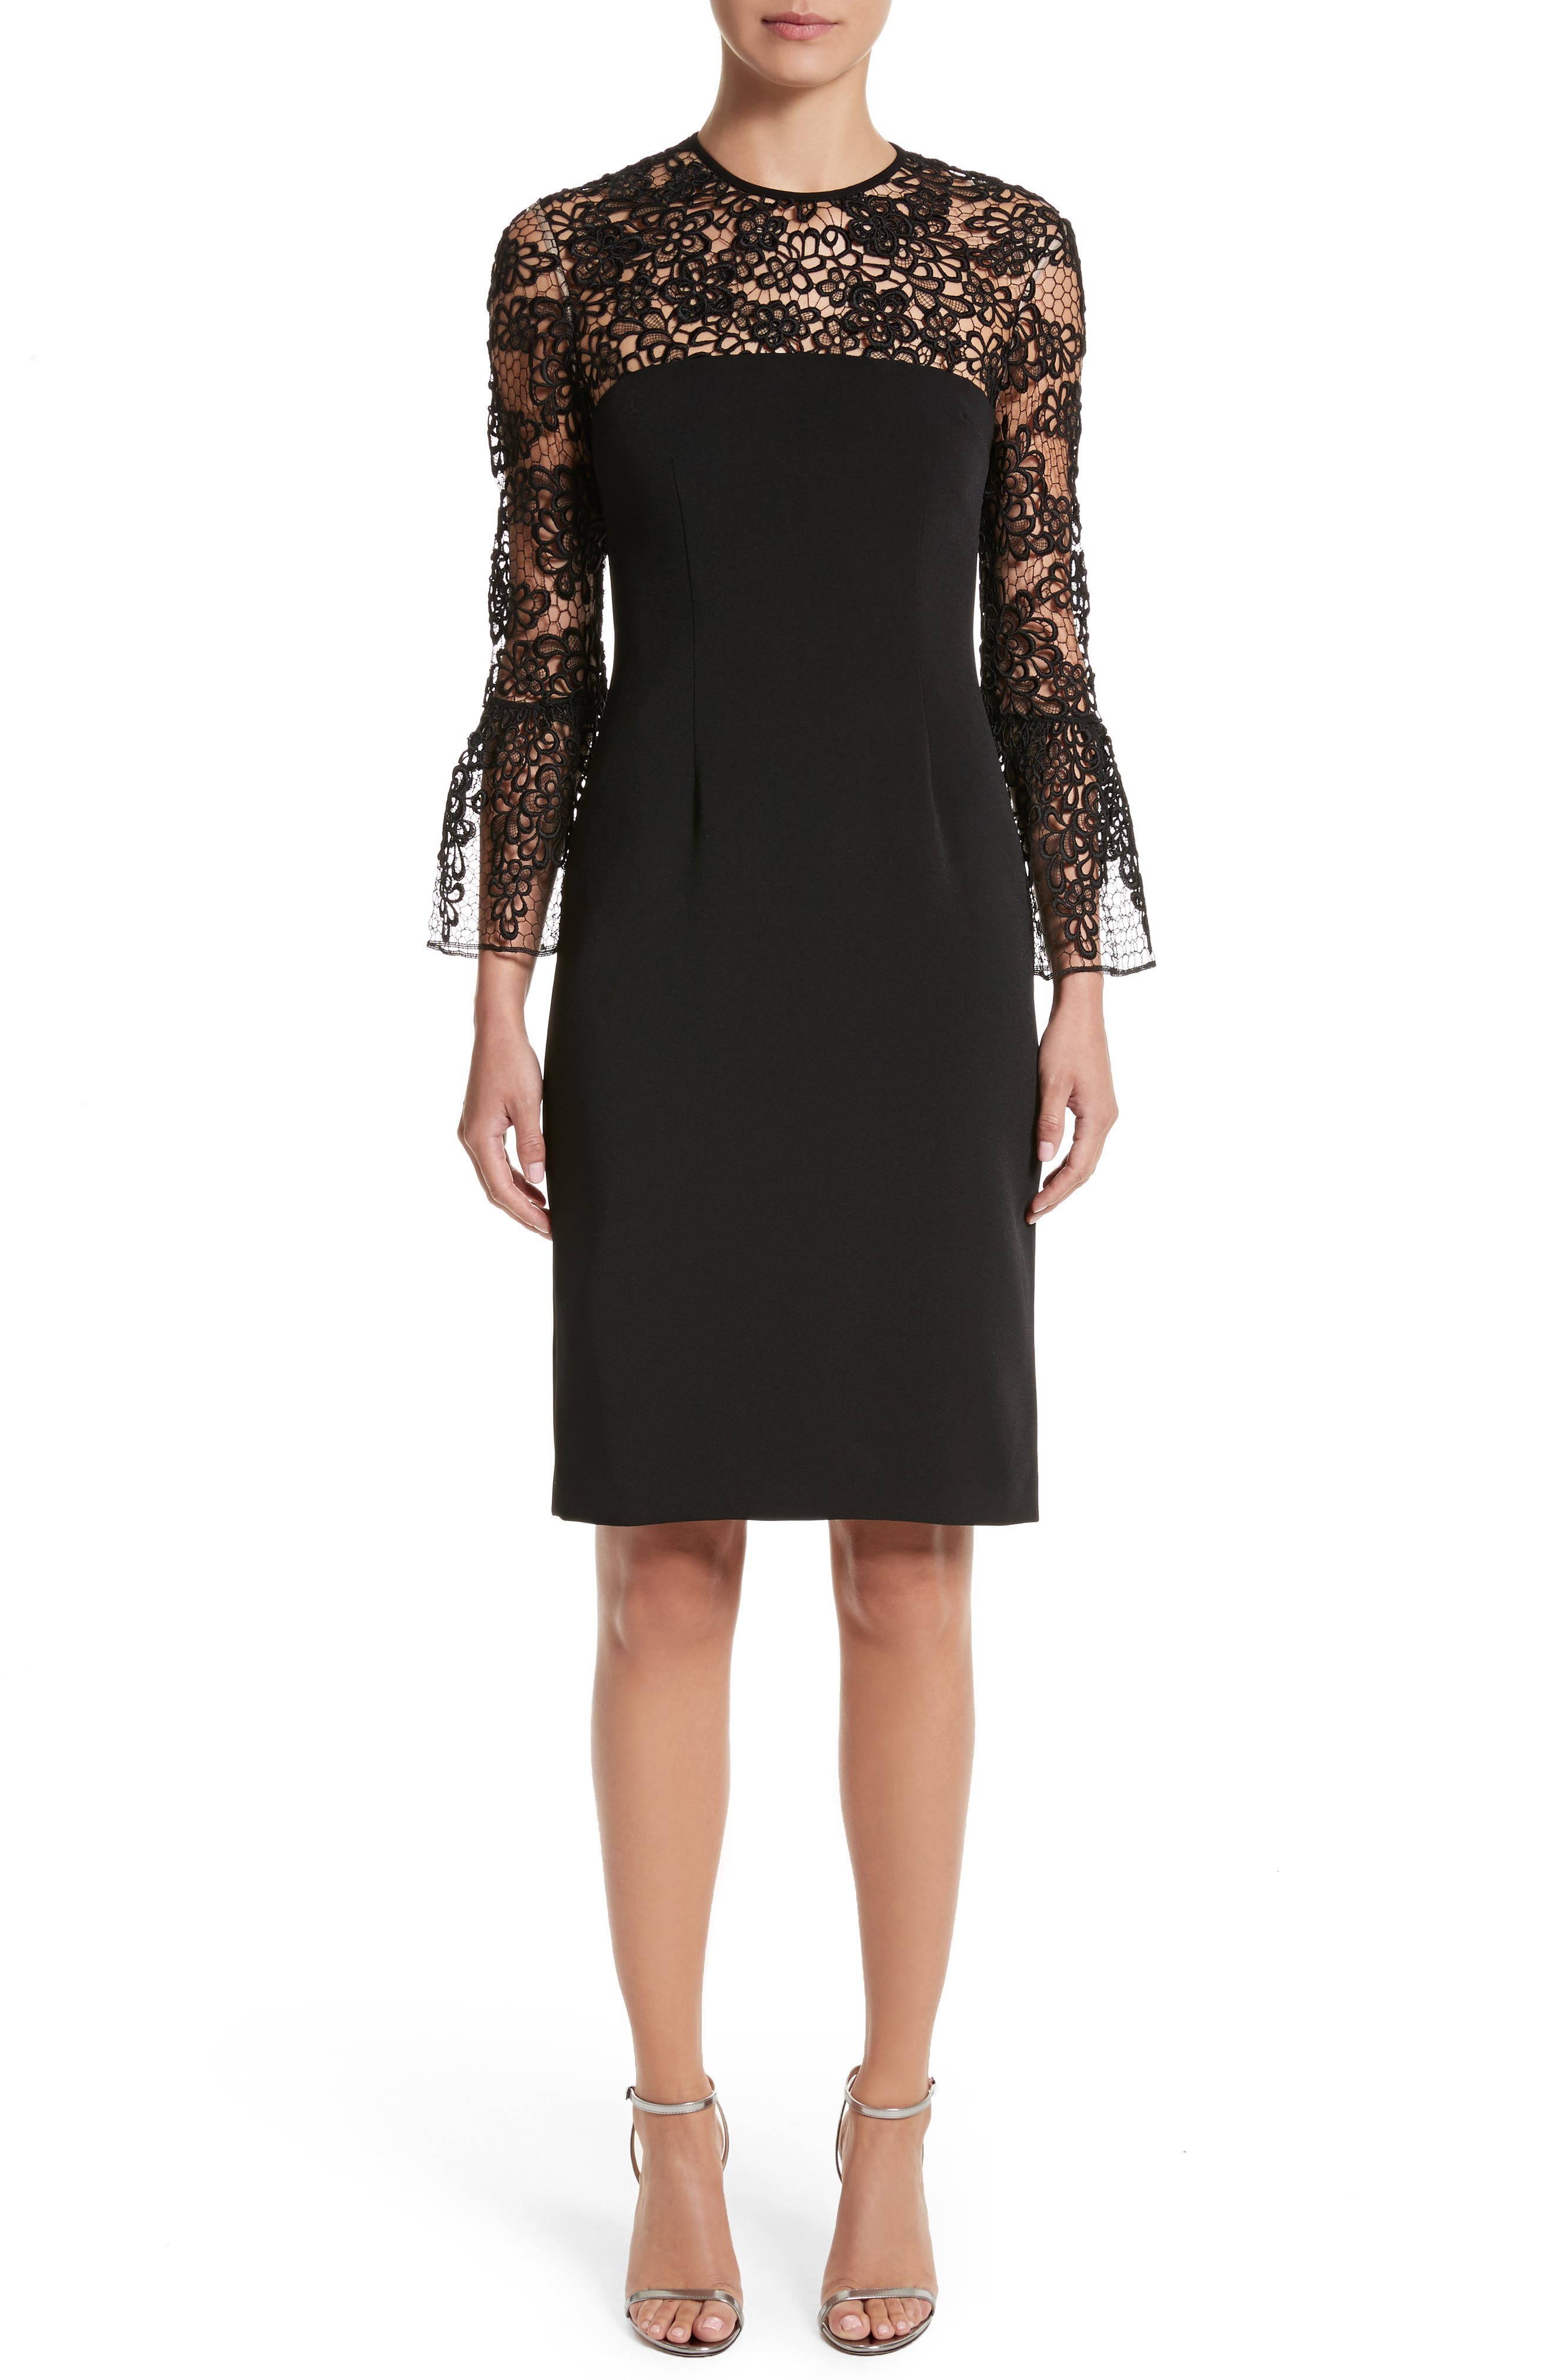 Alternate Image 1 Selected - Carmen Marc Valvo Couture Embroidered Lace Bell Sleeve Sheath Dress